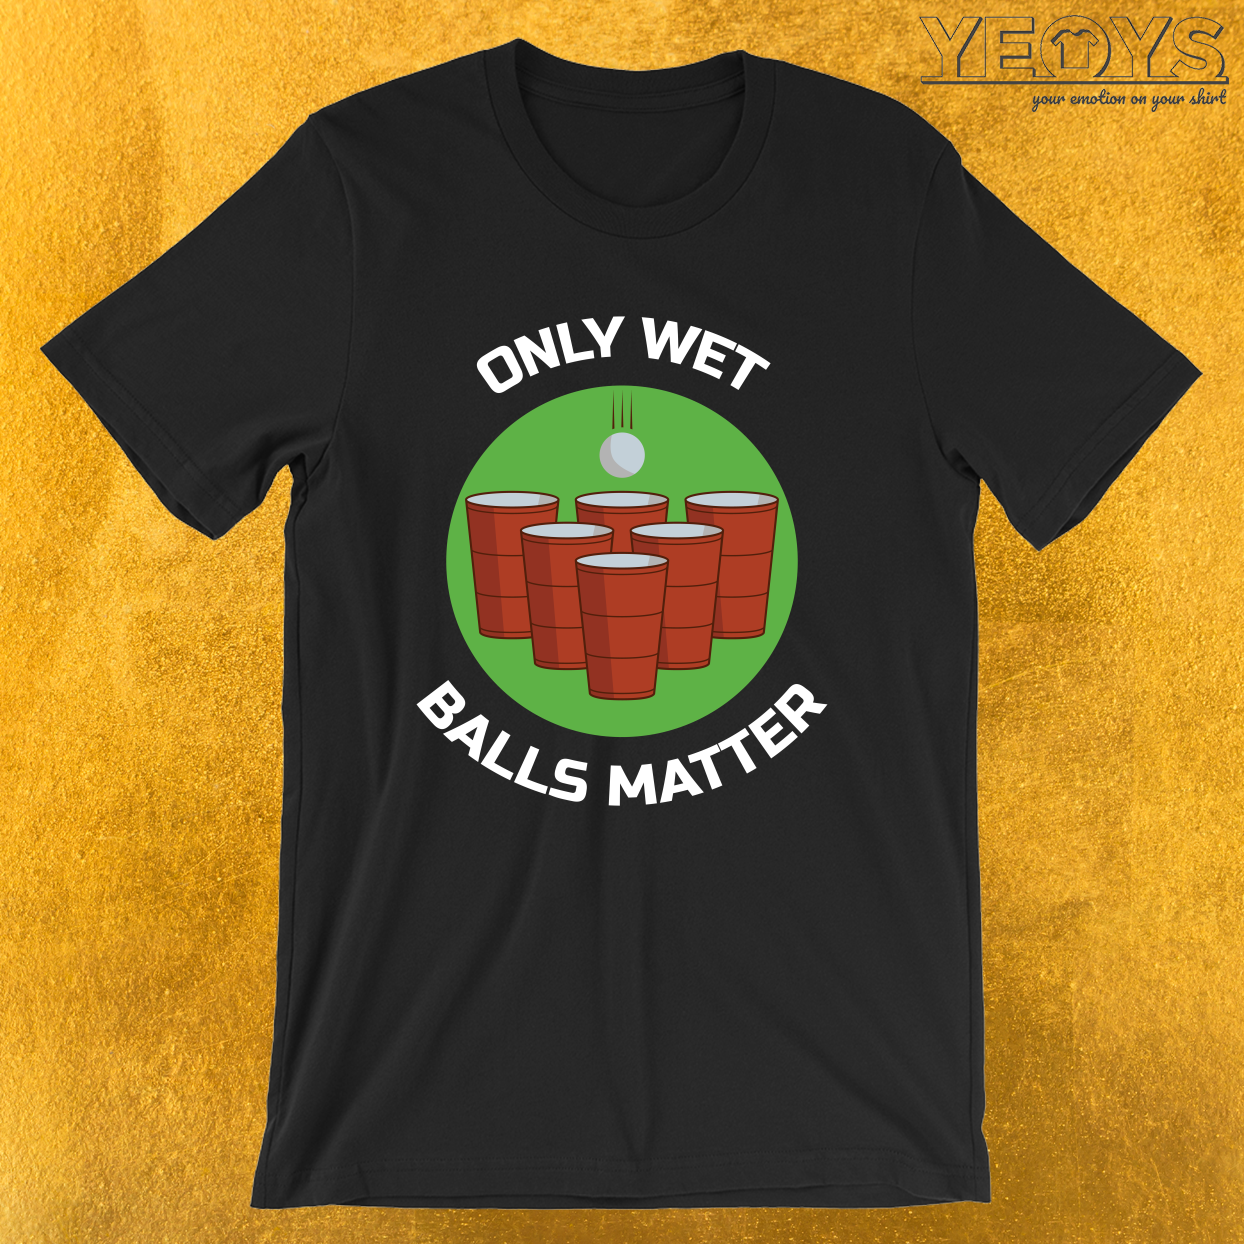 Only Wet Balls Matter – Funny Beer Pong Tee